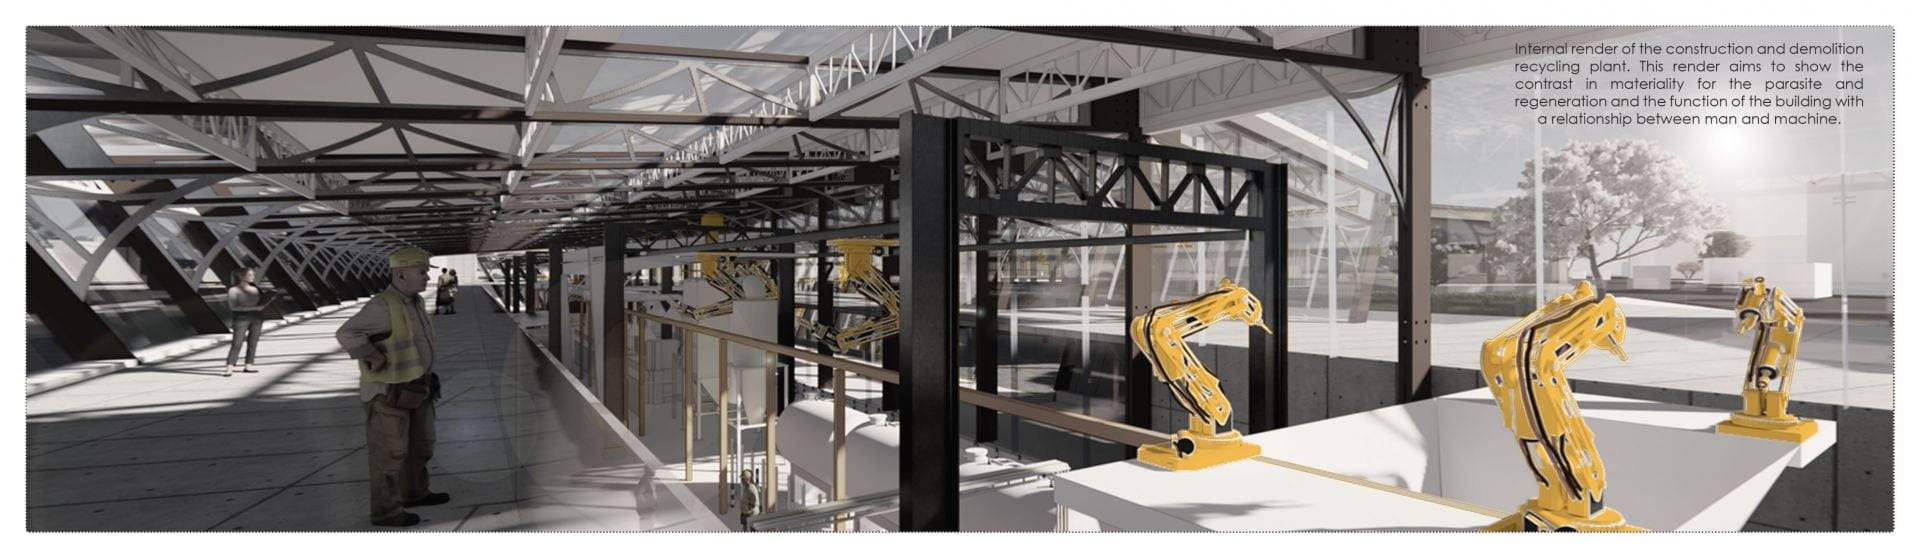 This internal render aims to develop a relationship between man and machine and how they can work together to redefine what happens with material waste.